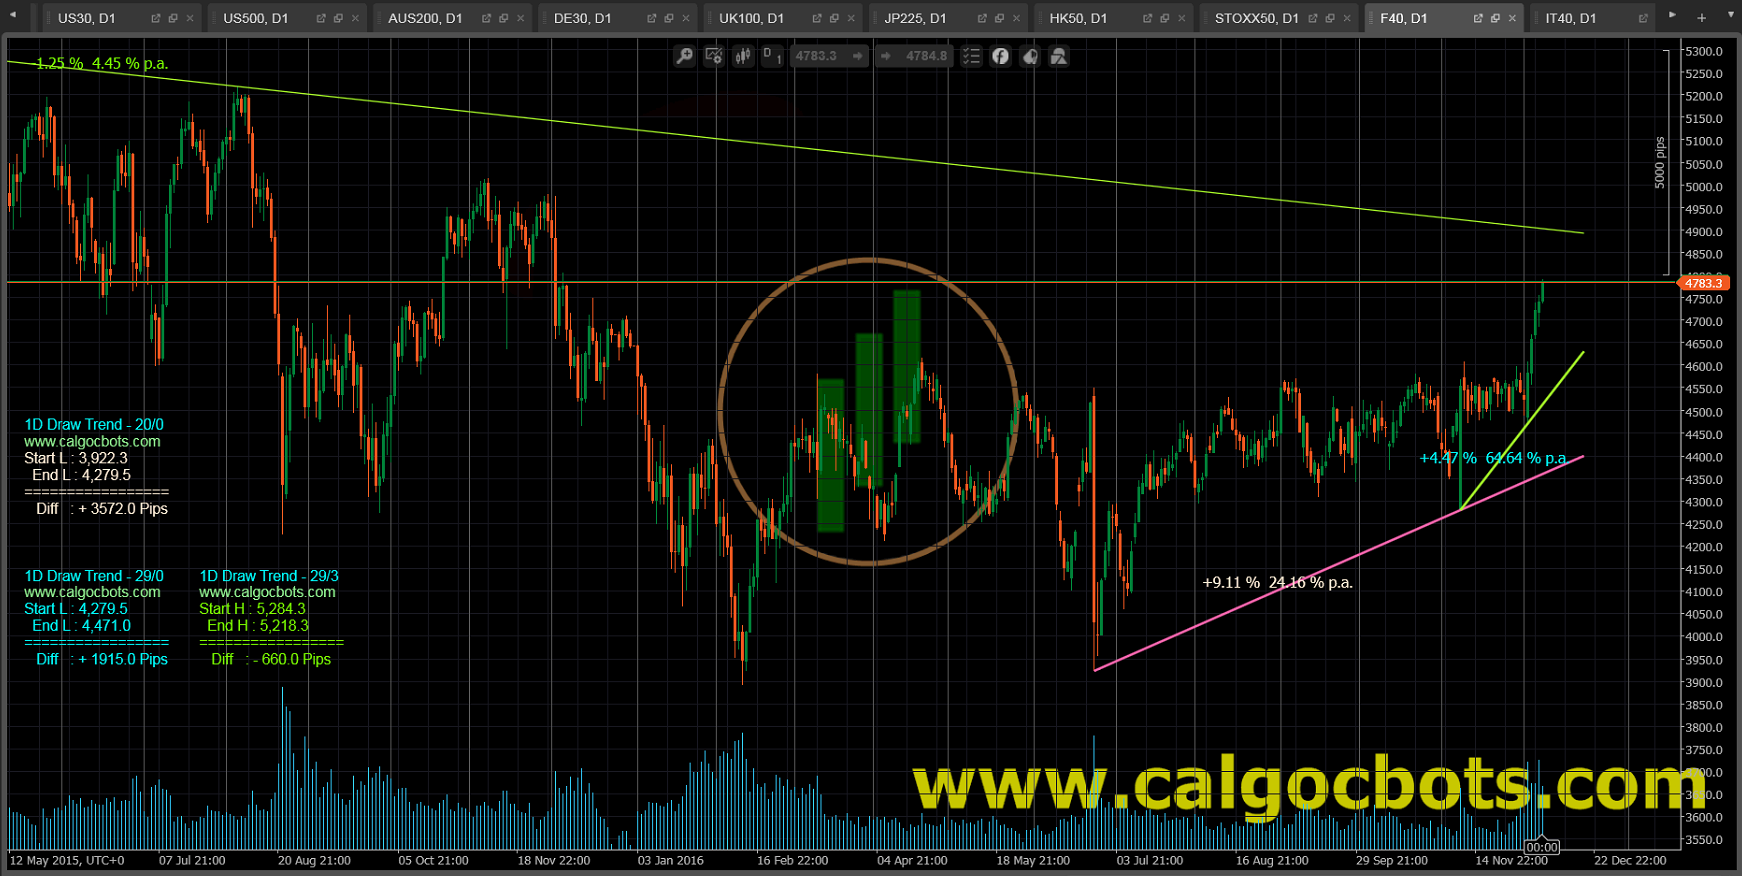 1D Draw Trend Color - cAlgo and cTrader Indicator - CAC 40 Index Daily Chart - 001